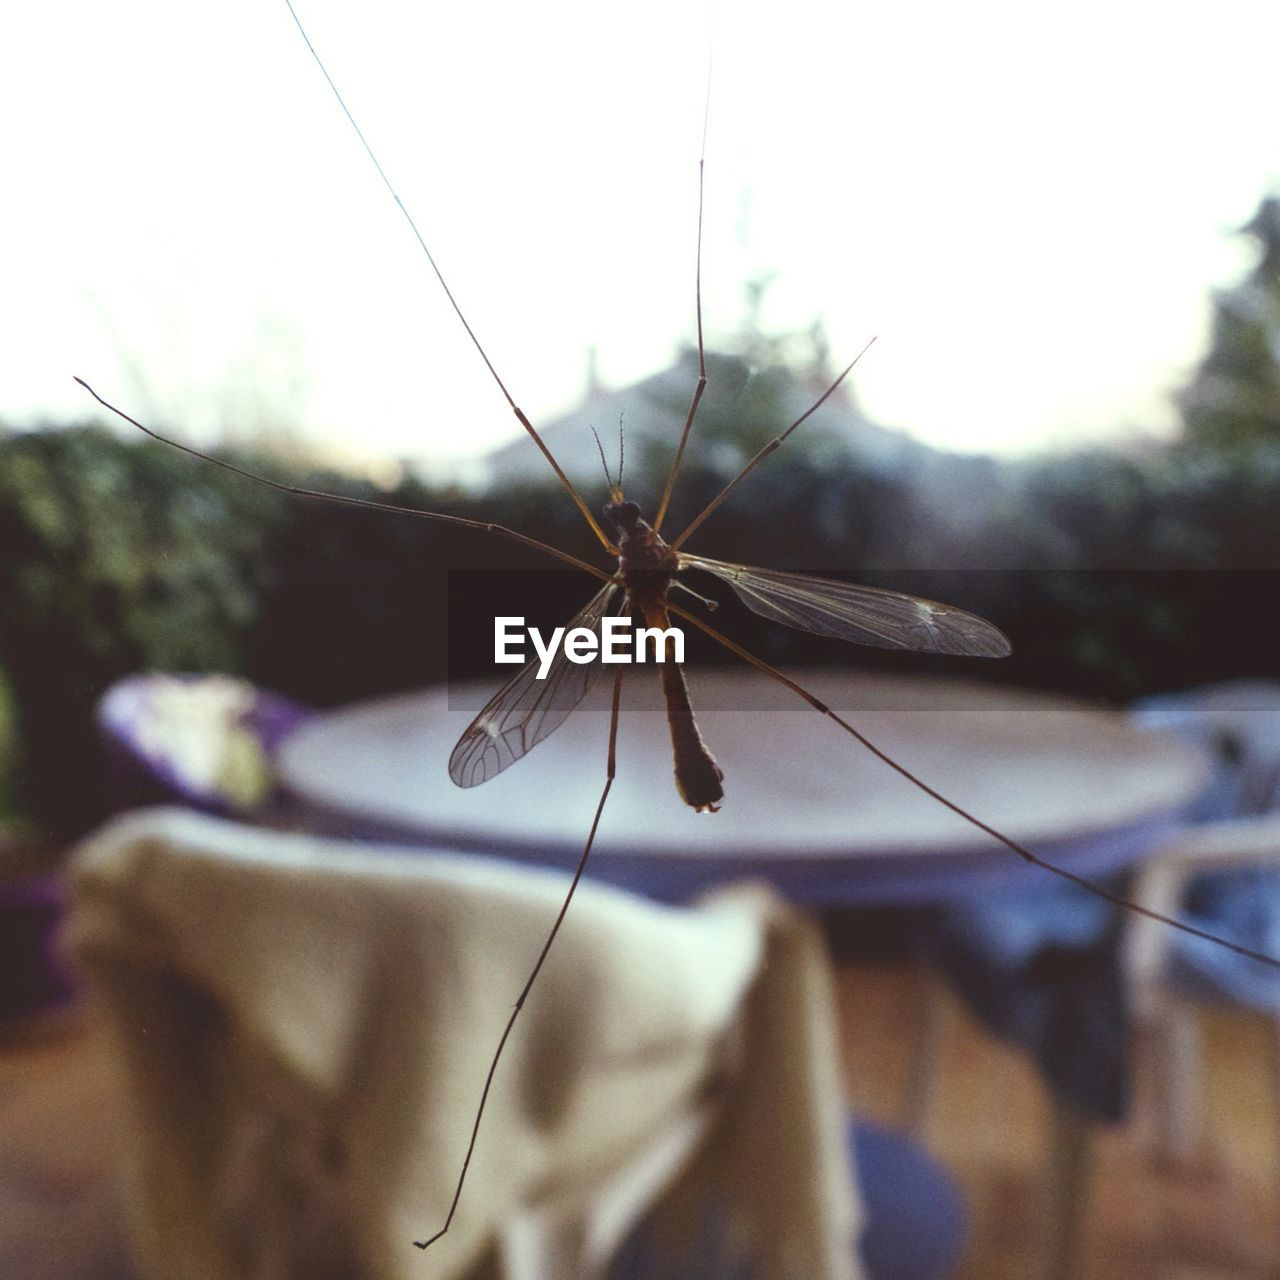 Close-Up Of Mosquito On Glass